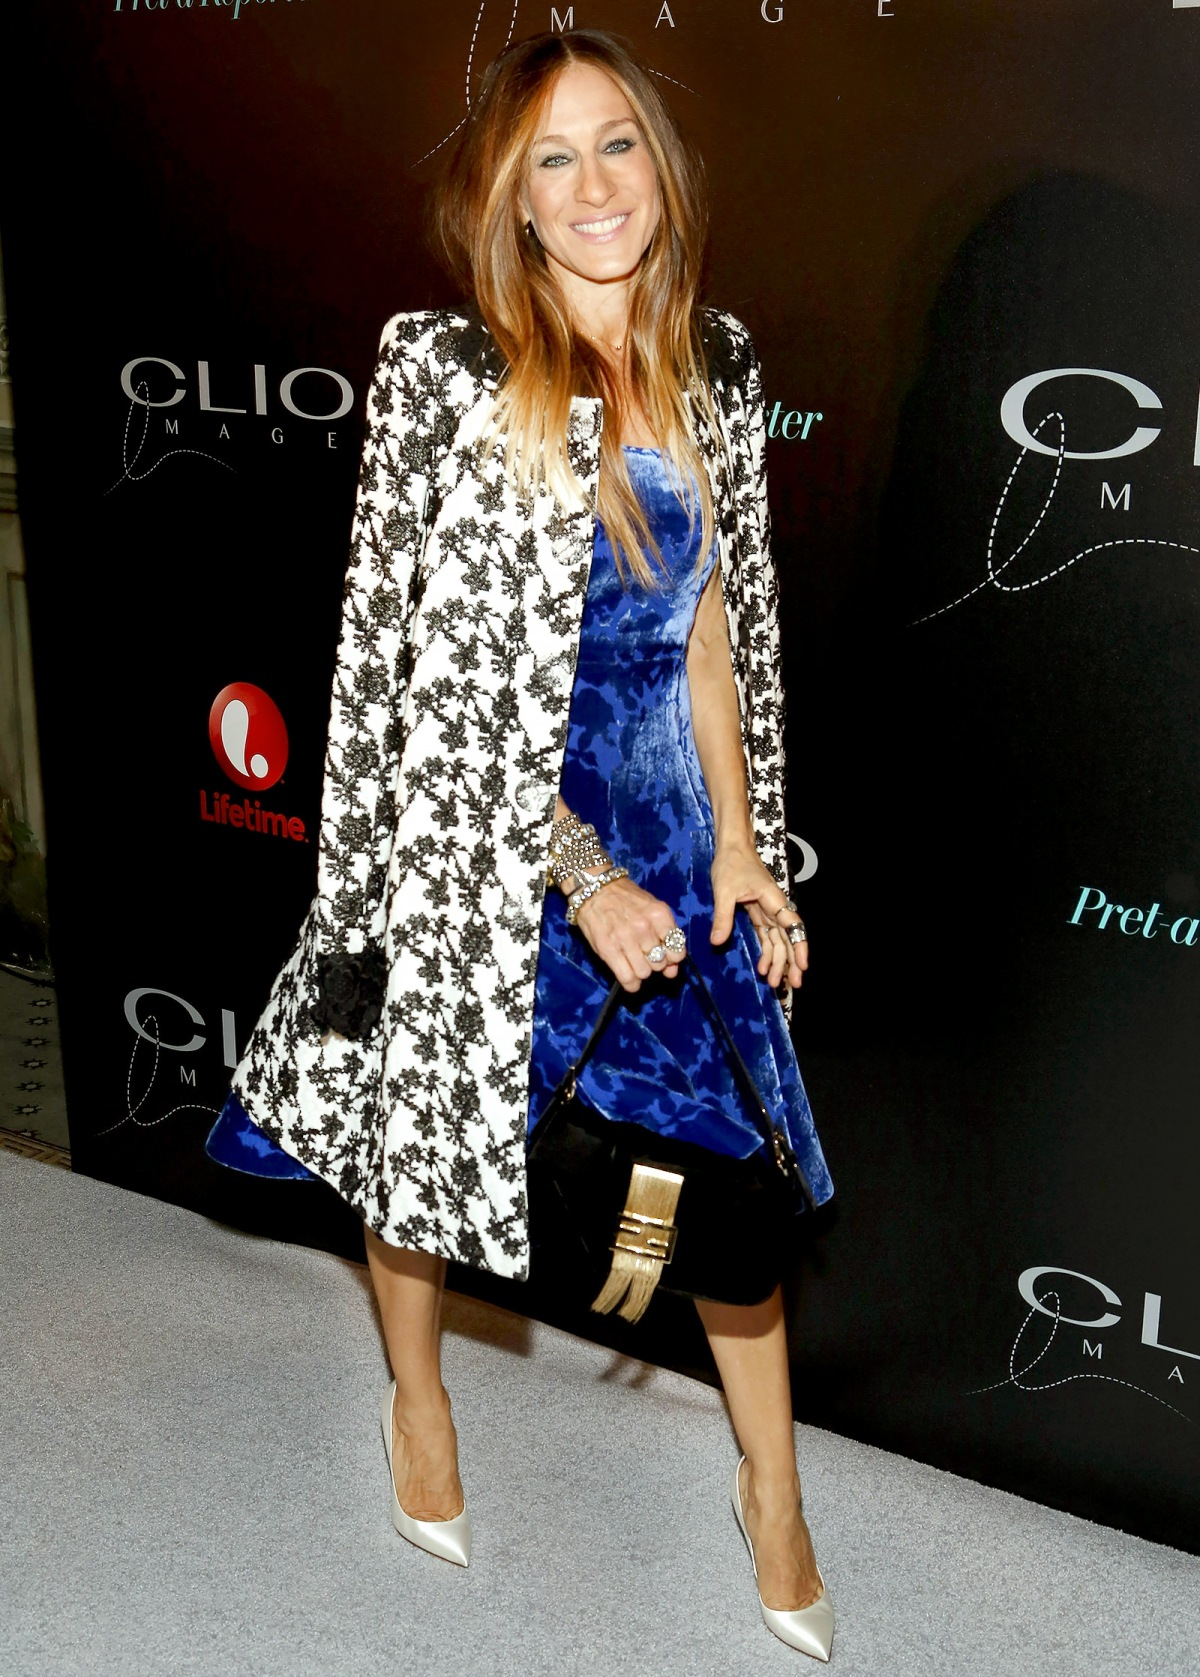 Sarah Jessica Parker Designs New Version of Her Sex and the City Character's Favorite Fendi Bag: Details